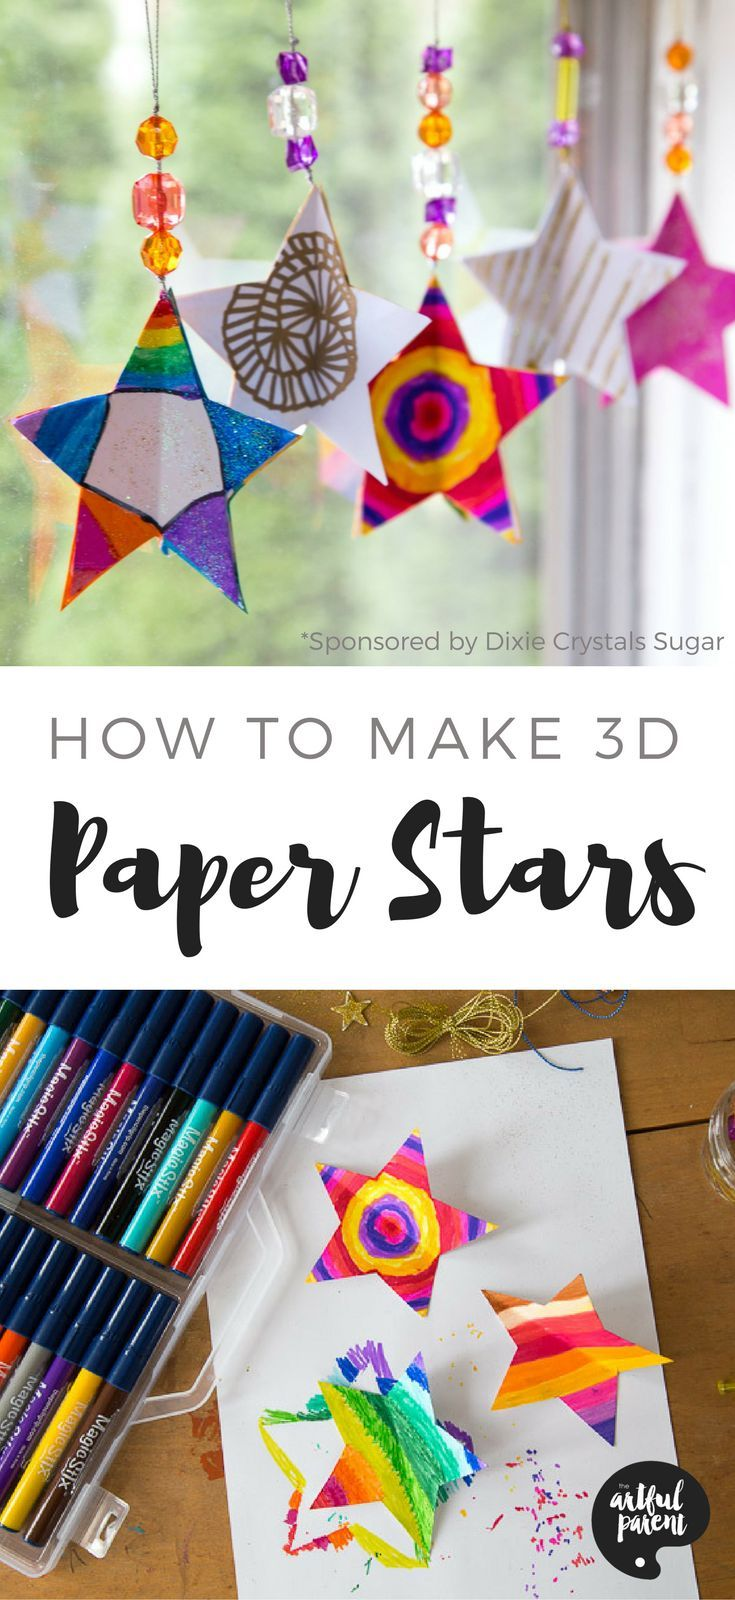 Learn how to make 3D paper star ornaments with this simple tutorial. These paper stars make great Christmas ornaments, decorations, and gifts!